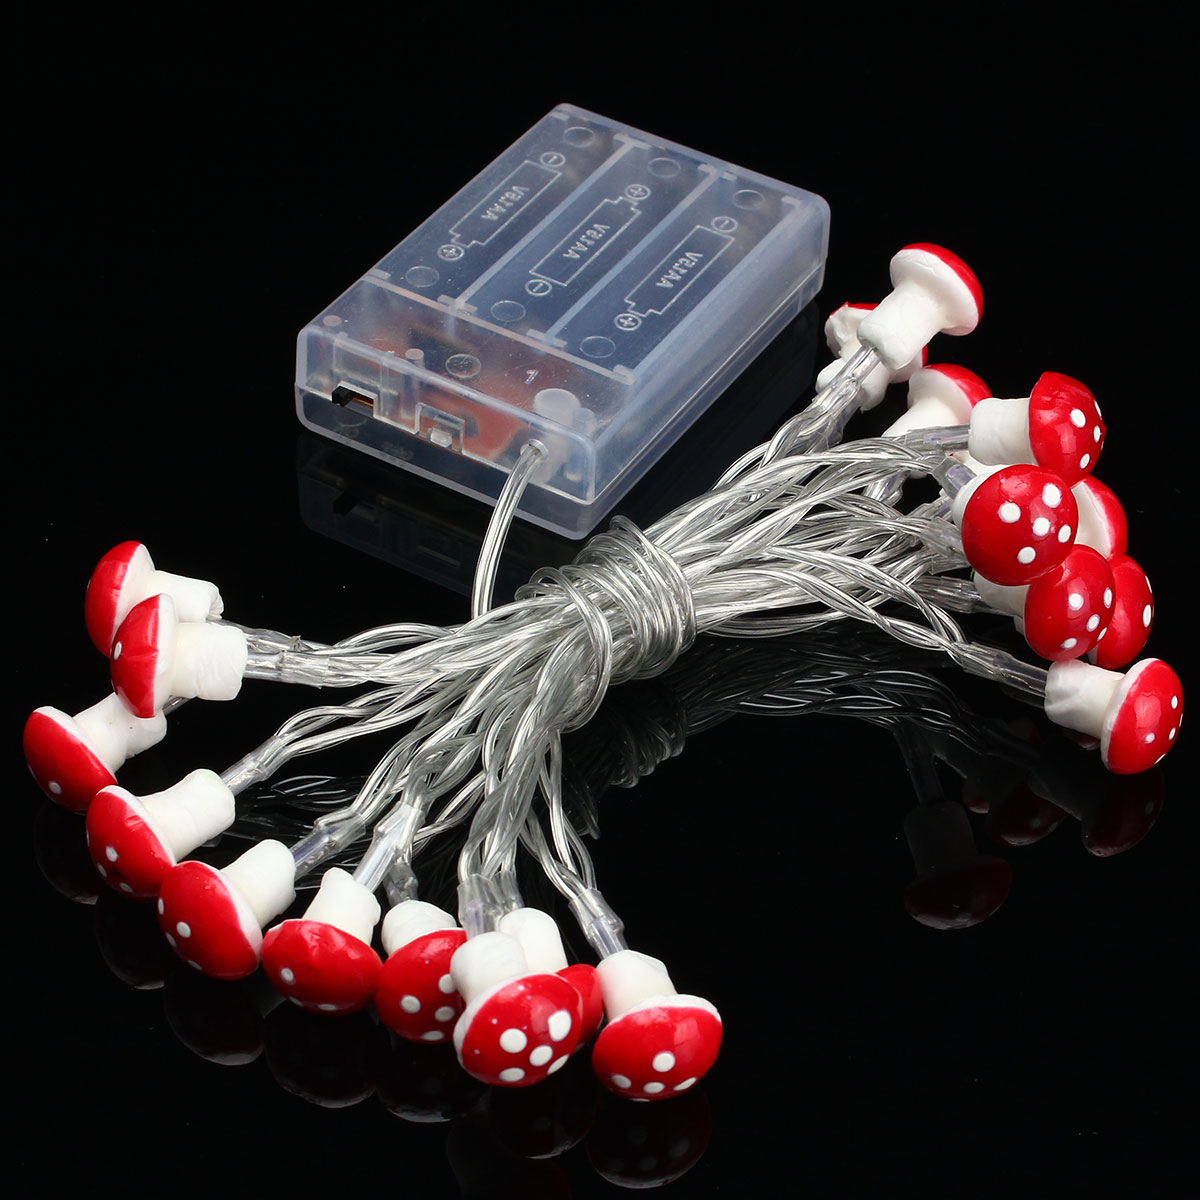 Outdoor String Lights With Batteries : 2M 20 LED Mushroom Fairy String Light Lamp Battery Outdoor Garden Party Decor Pure White ...